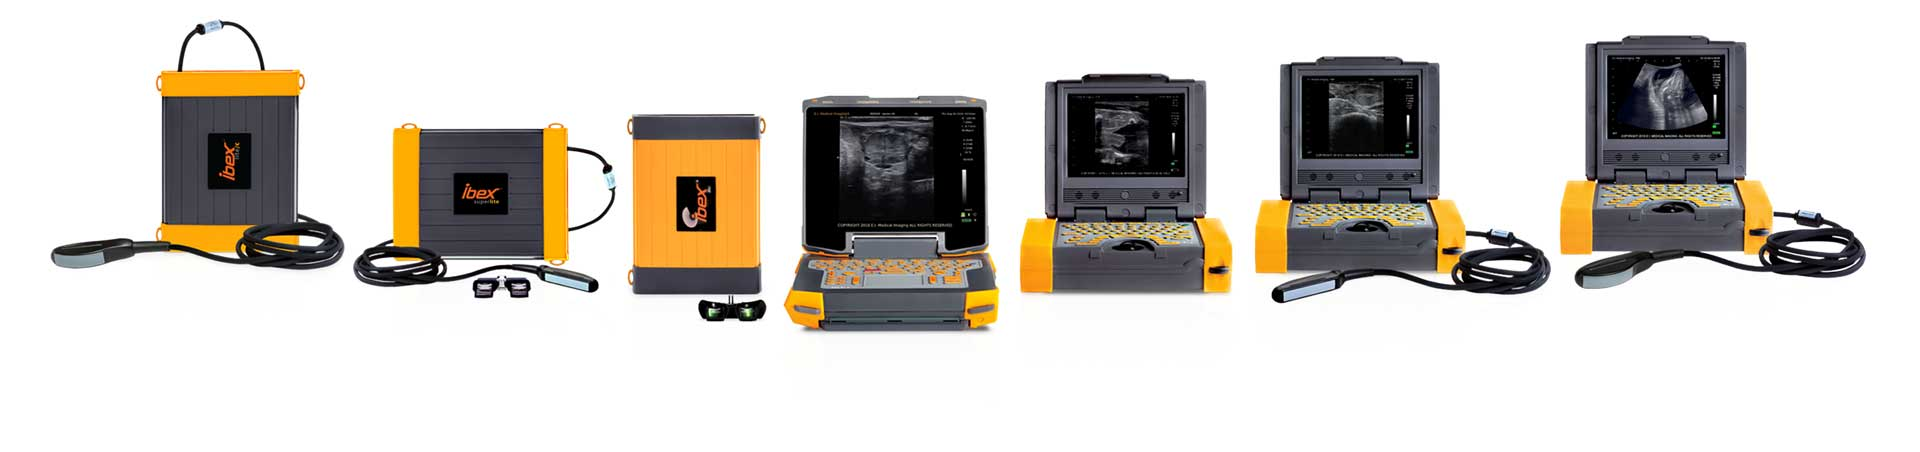 EIMI's veterinary ultrasound lineup